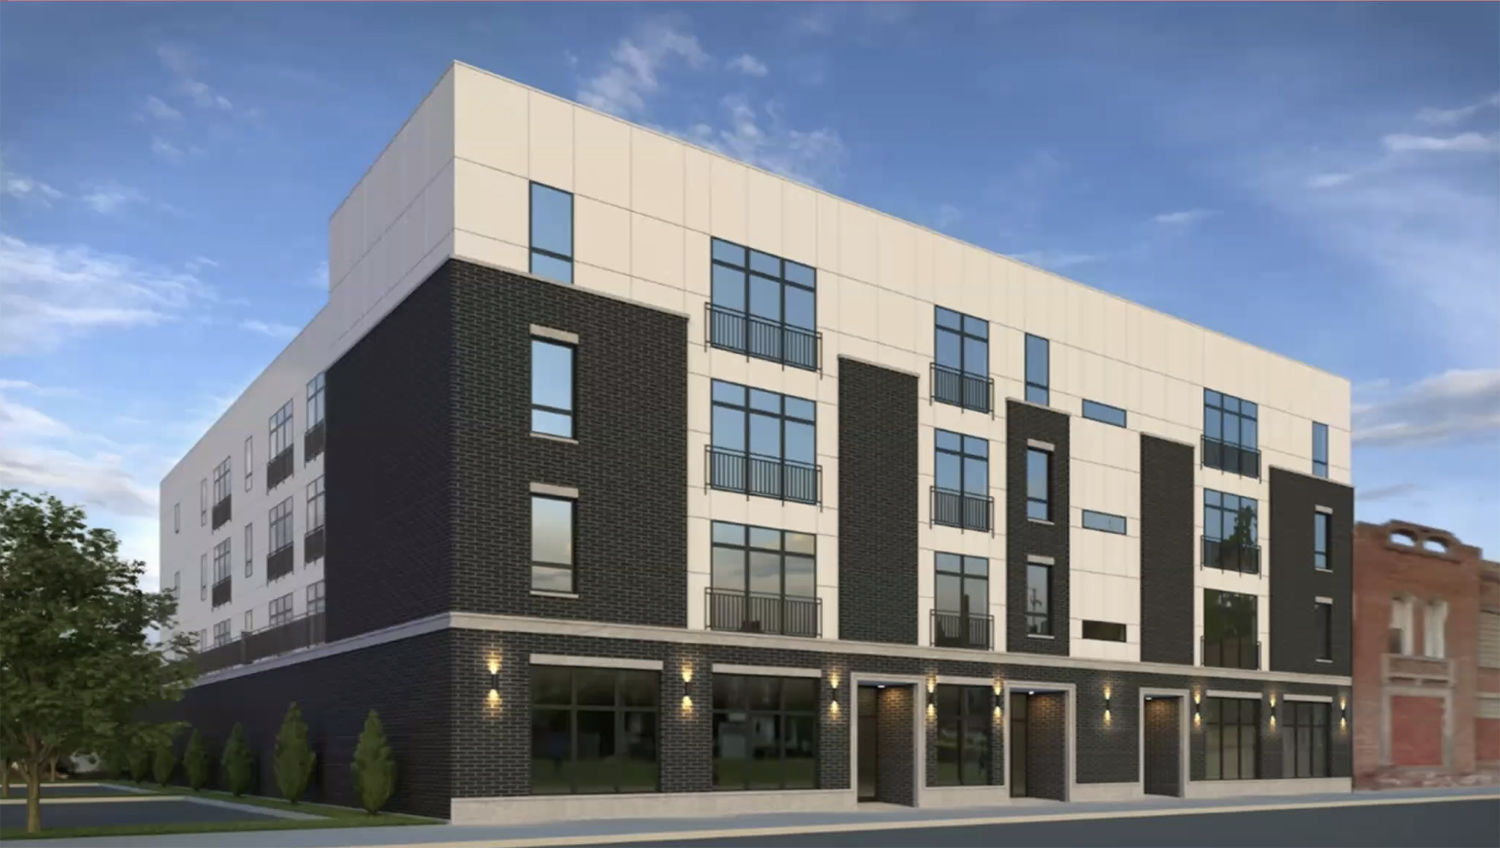 920 E 43rd Street. Rendering by Pro-Plan Architects